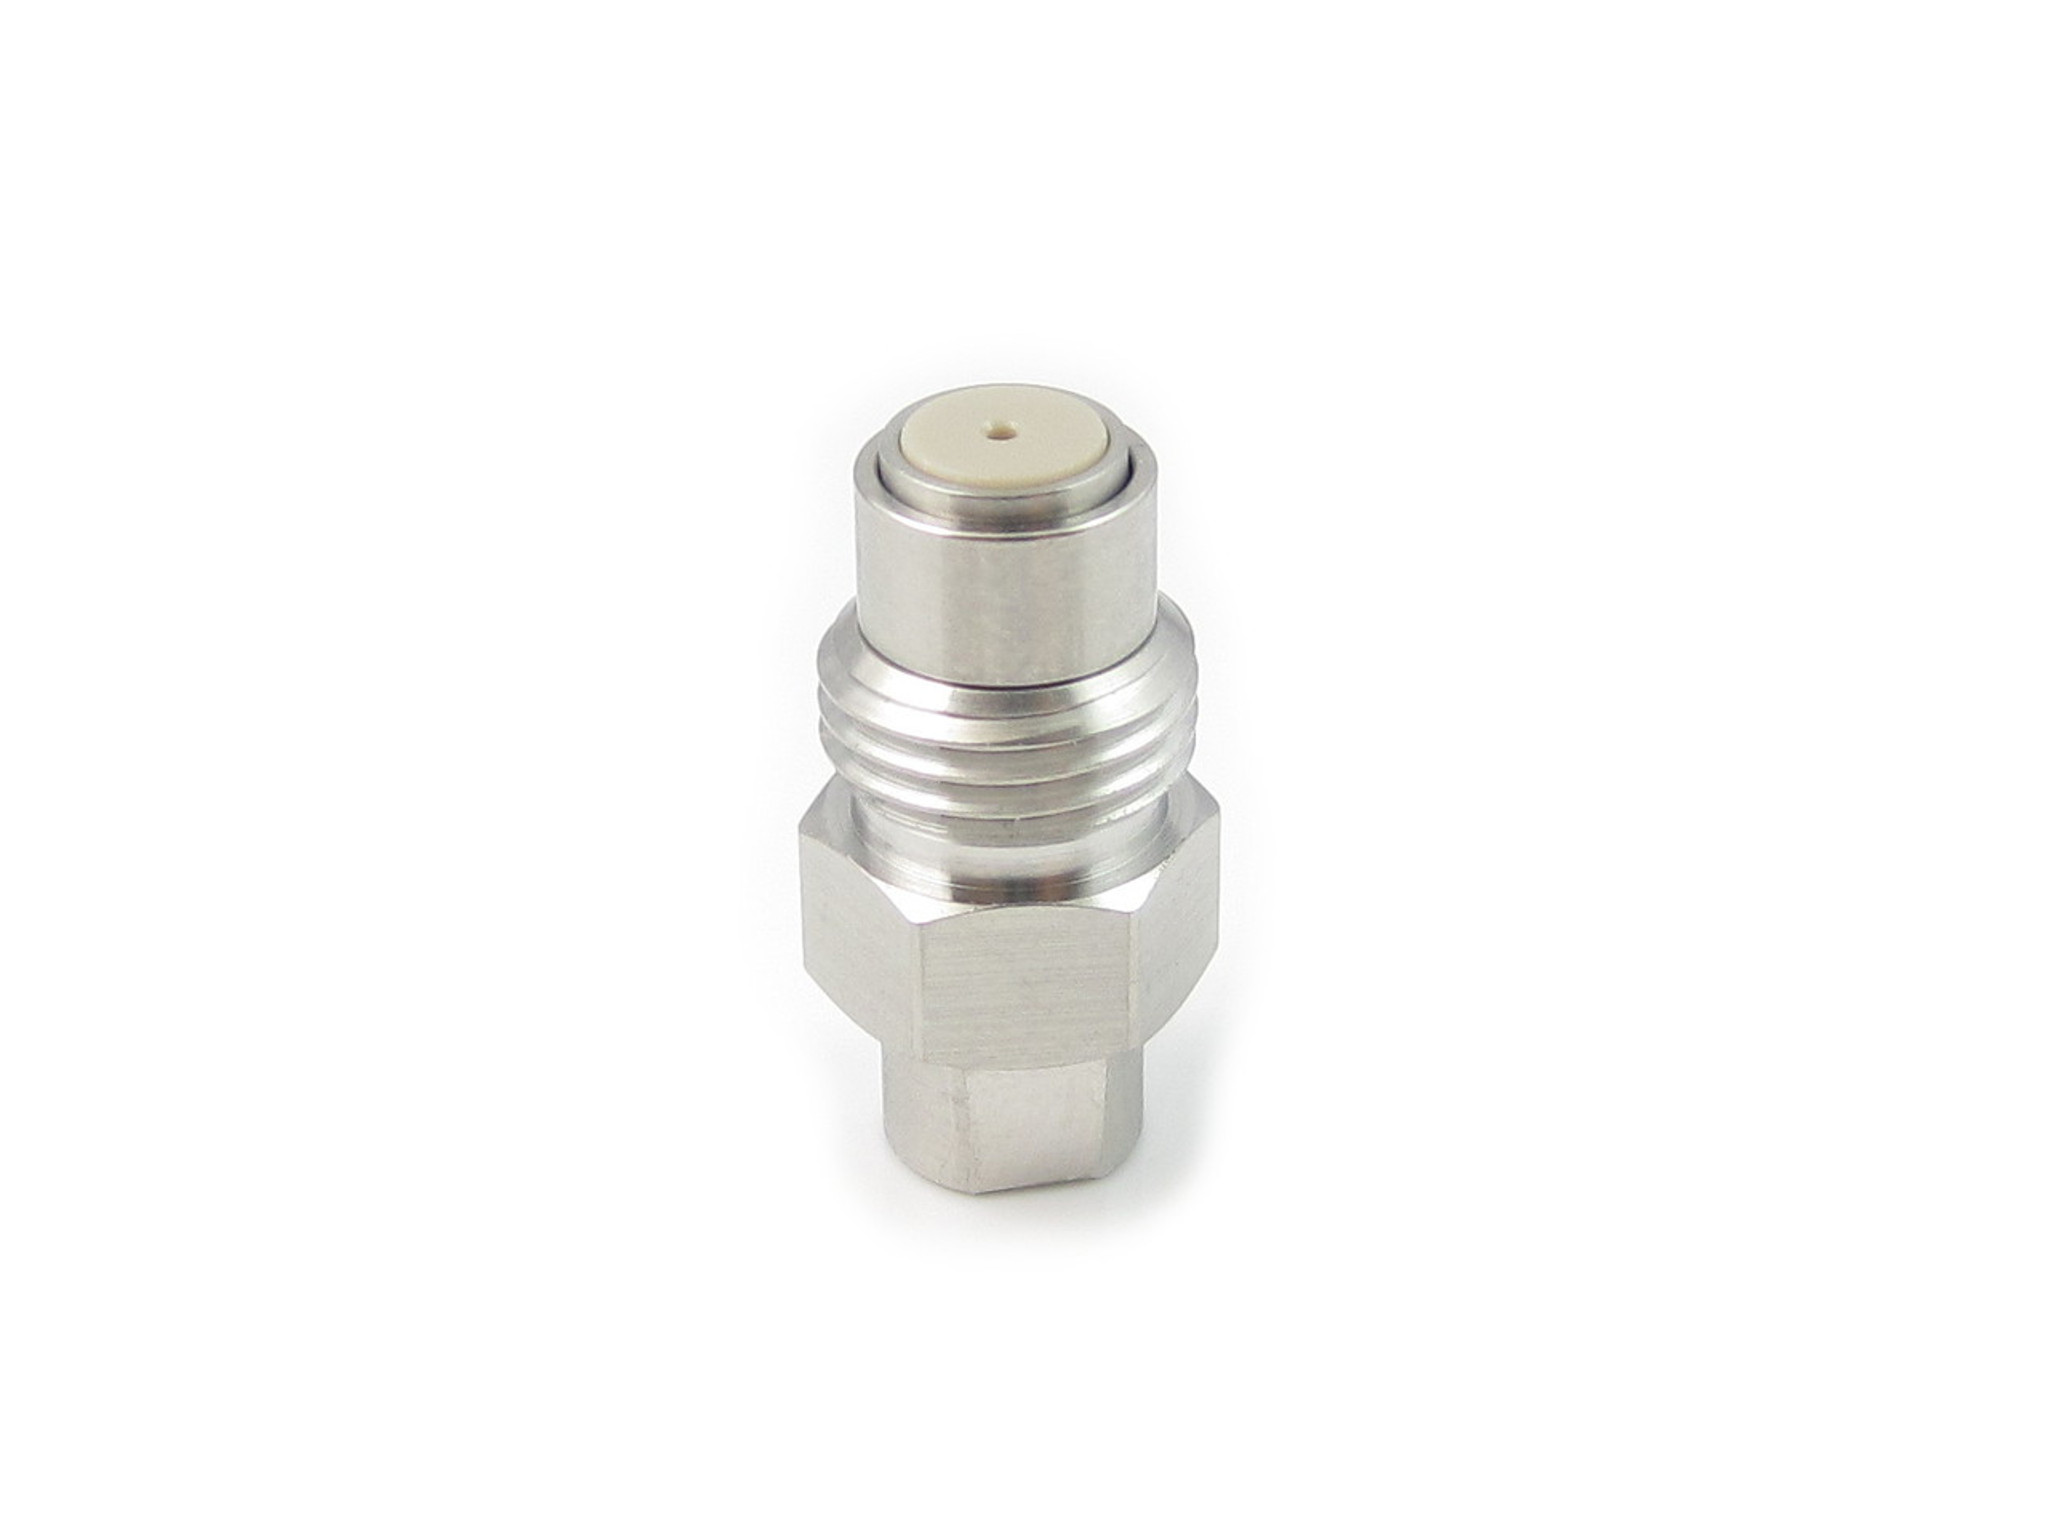 2 Piece Style Housing Inlet Check Valve Assembly, Shimadzu LC-20AB,  LC-20AD, LC-20ADXR, 20ADsp, LC-20ADnano, LC-30ADSF, Prominence-i